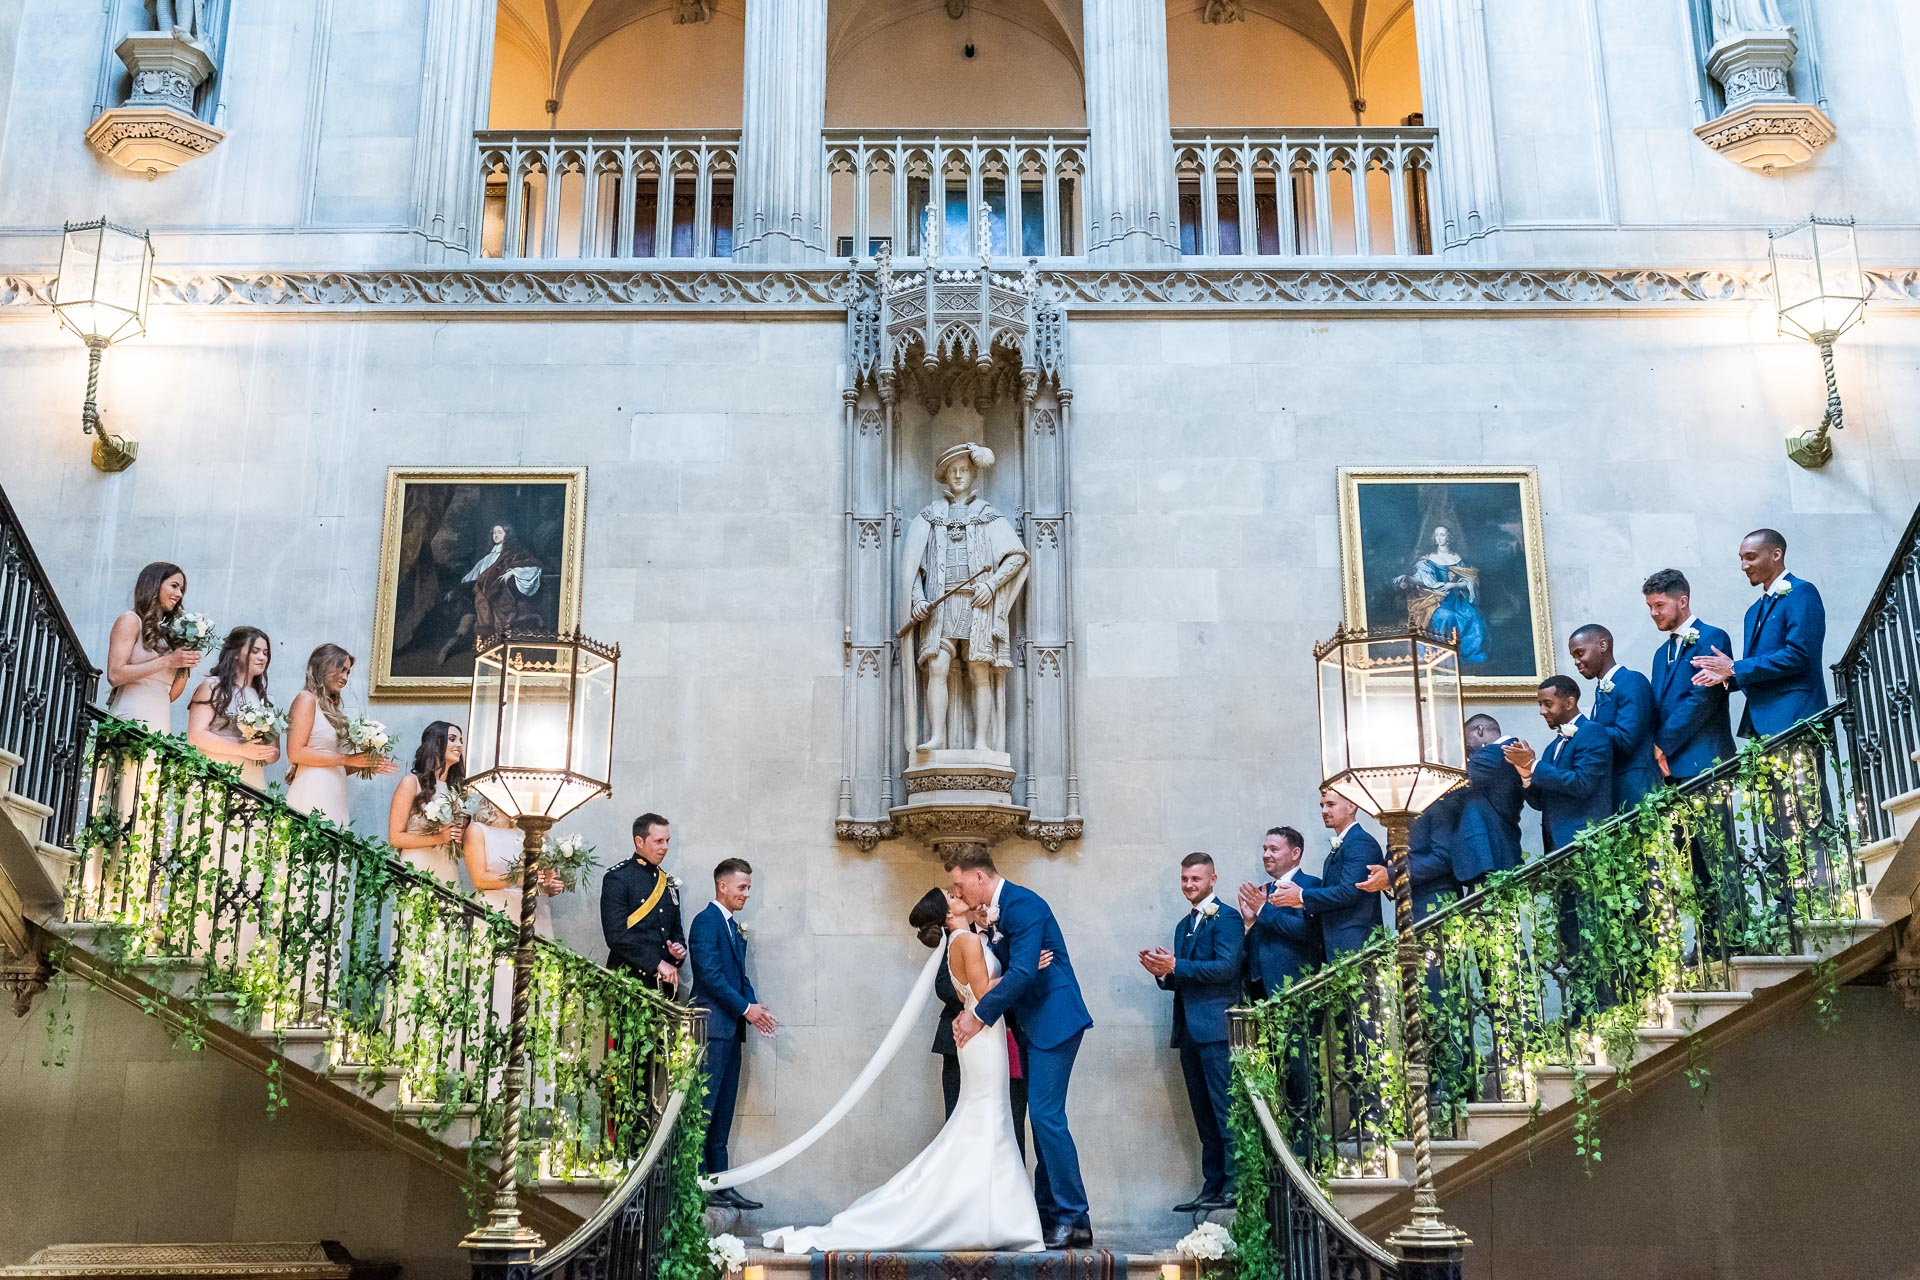 An image of a bride and groom's first kiss - wedding day photography by Sam of Hansford Carter, a Kent-based wedding photographer